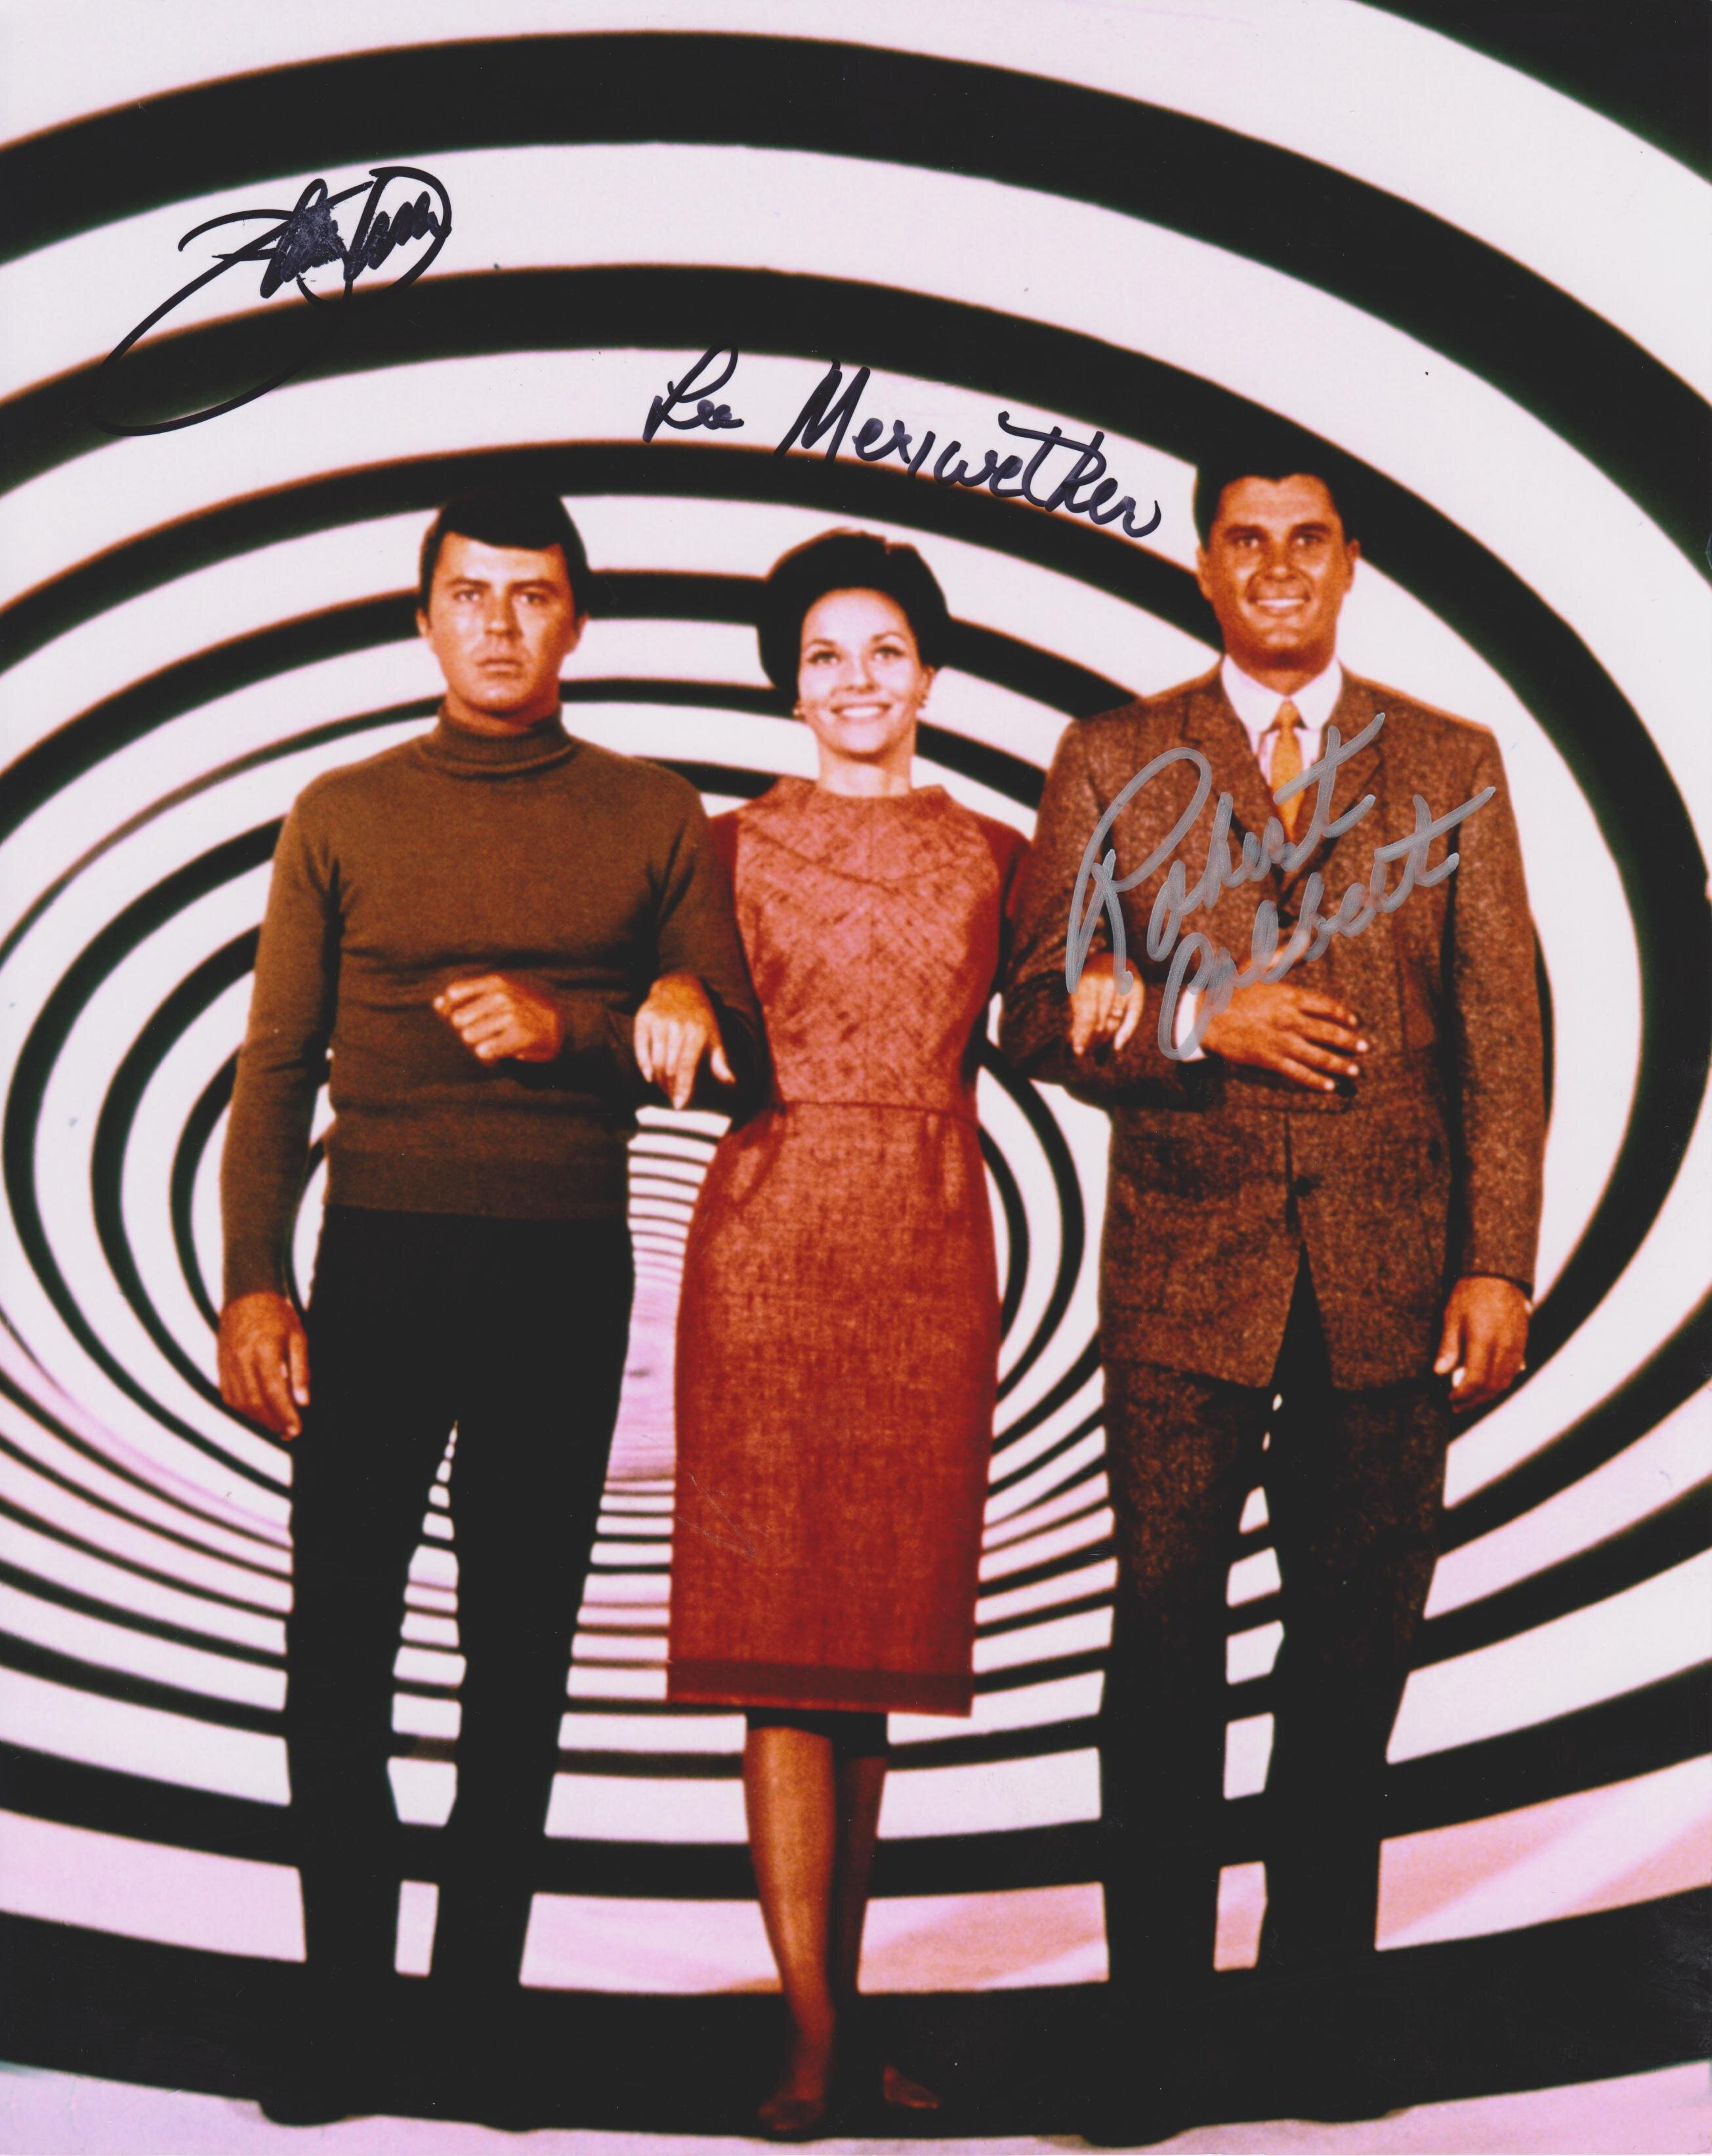 Time Tunnel cast of 3